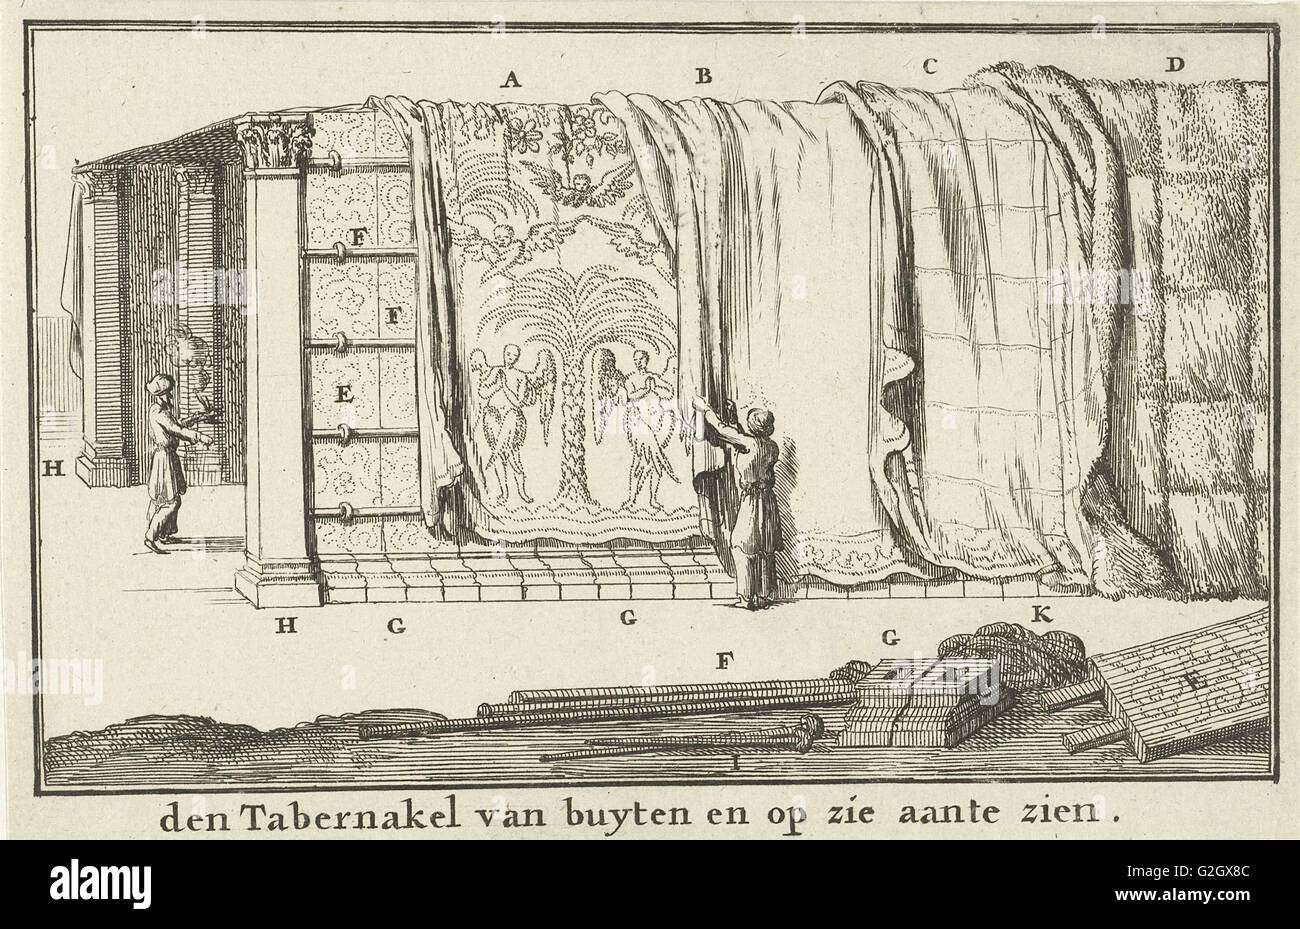 Construction of the Tabernacle, Jan Luyken, Willem Goeree, 1683 - Stock Image